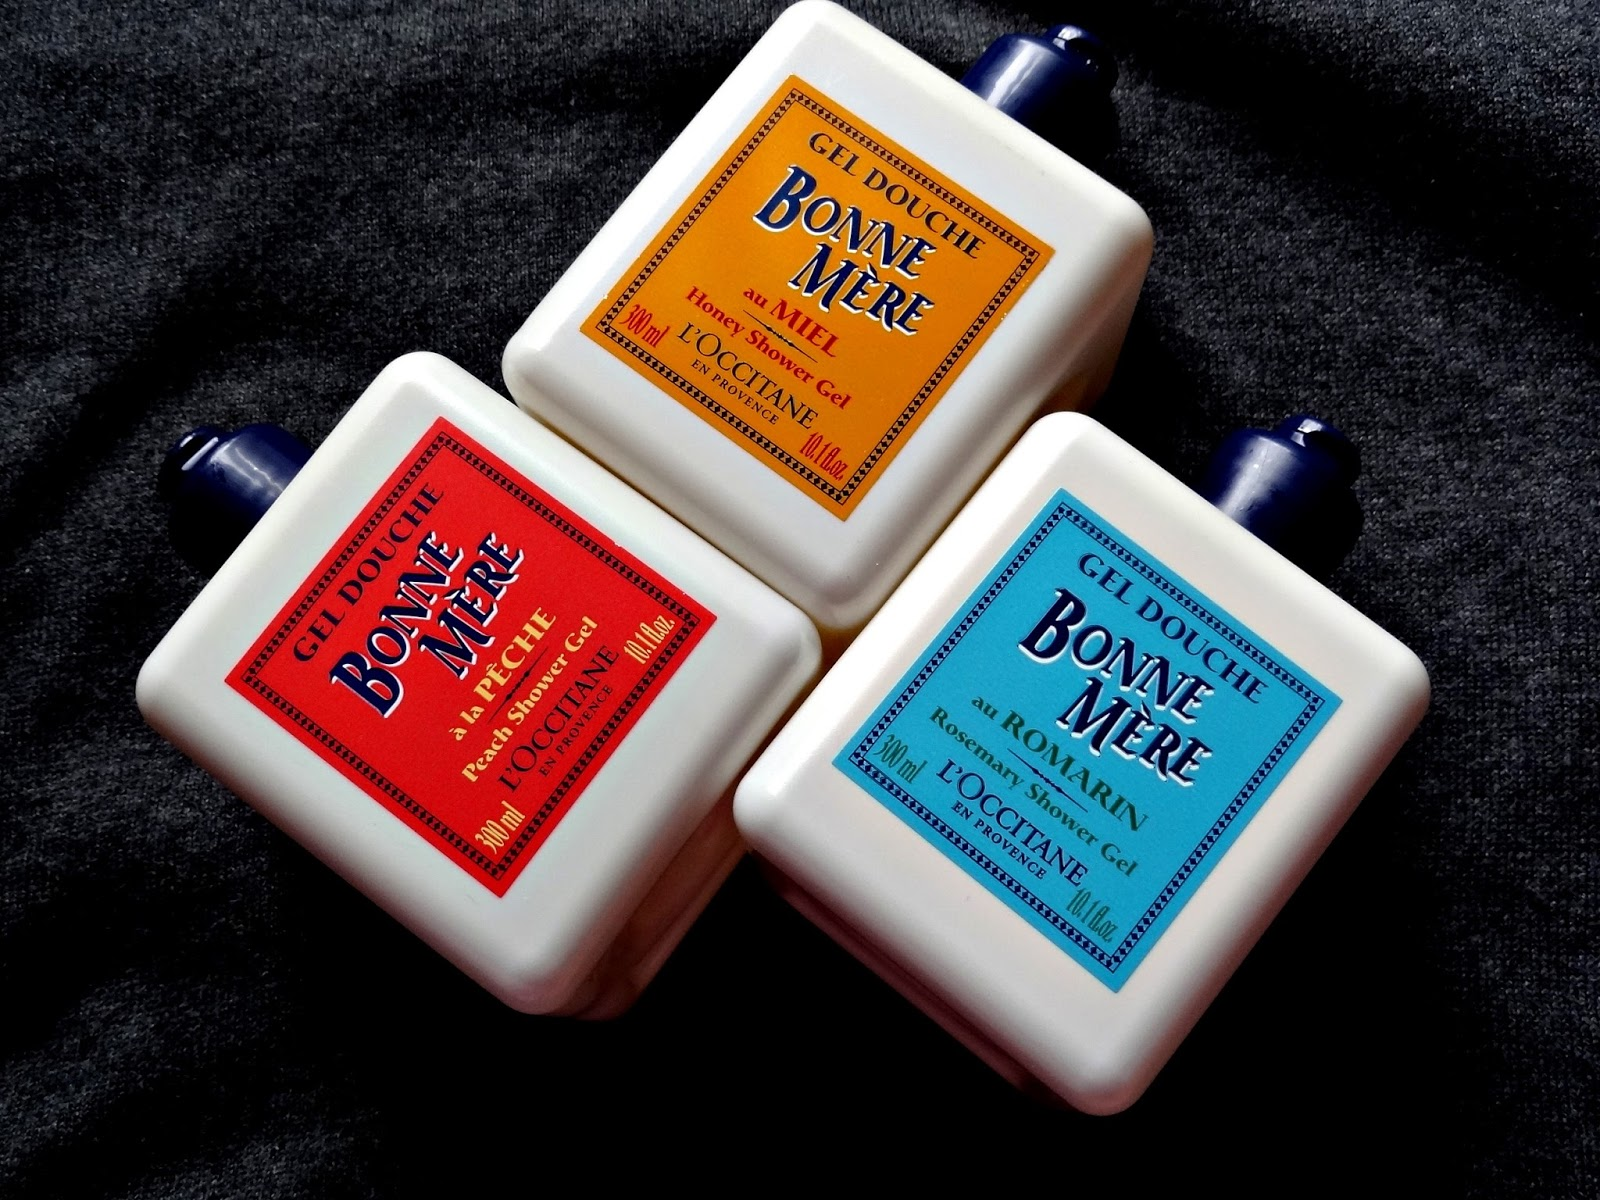 L'Occitane Bonne Mere Shower Gels in Honey, Rosemary & Peach